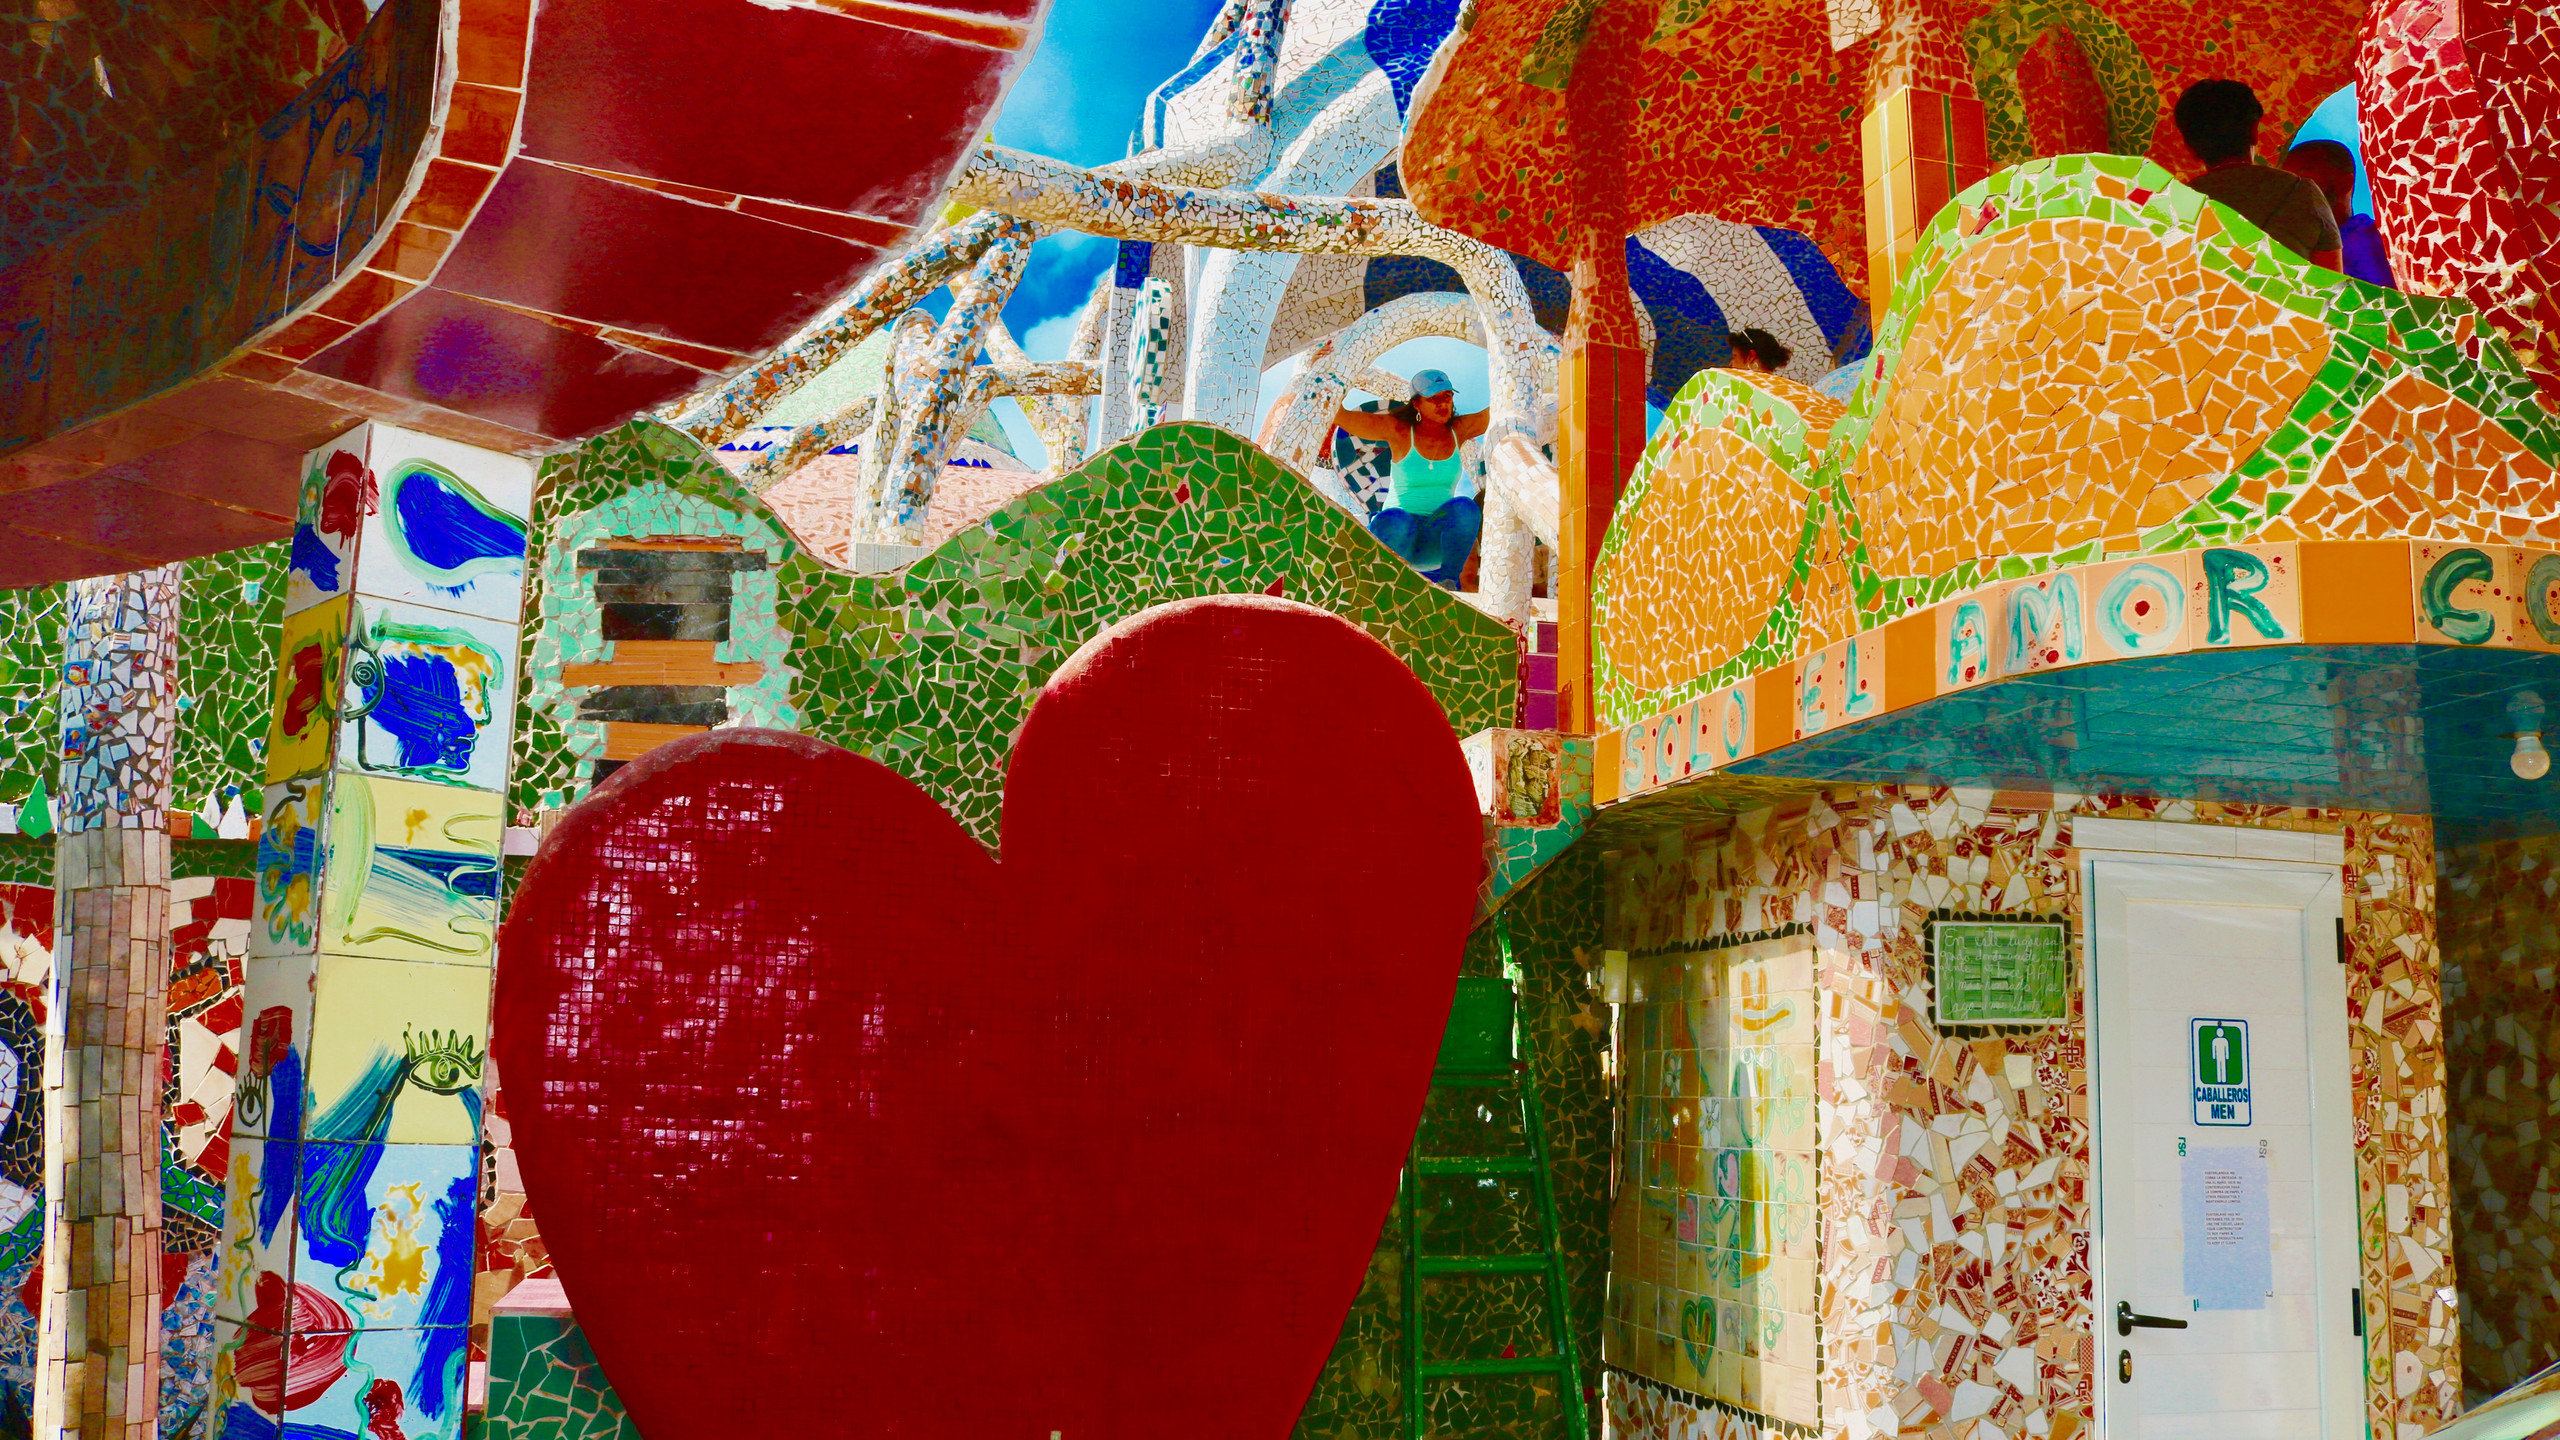 A large tiled heart and other shapes covered in colorful tiles at Fusterlandia.